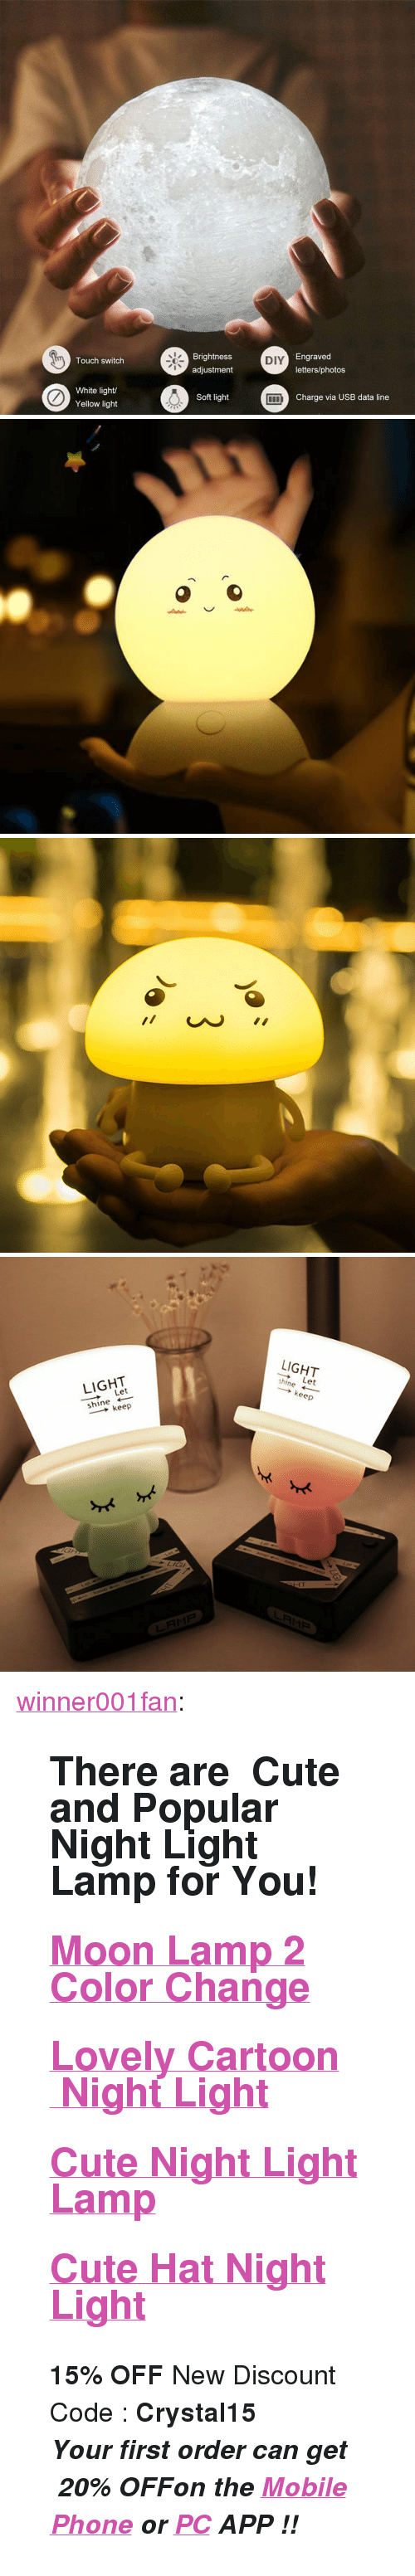 "Cute, Phone, and Tumblr: Brightness  adjustment  Engraved  letters/photos  Touch switch  DIY  White light  Yellow light  Soft light  Charge via USB data line   LIGHT  LIGHT  ー→ Let  shine ←  → keep  hine Let  → keep  LRM尸 <p><a href=""https://winner001fan.tumblr.com/post/169831968875/there-are-cute-and-popular-night-light-lamp-for"" class=""tumblr_blog"">winner001fan</a>:</p><blockquote> <h2>There are  Cute and Popular Night Light Lamp for You!</h2> <h2><a href=""https://goo.gl/HiLXdU"">Moon Lamp 2 Color Change</a></h2> <h2><a href=""https://goo.gl/mFPDXH"">Lovely Cartoon  Night Light</a></h2> <h2> <a href=""https://goo.gl/P4VKvG"">Cute Night Light Lamp</a> </h2> <h2><a href=""https://goo.gl/m1ZXxL"">Cute Hat Night Light</a></h2> <p><b>15% OFF </b>New Discount Code : <b>Crystal15</b></p> <p><i><b><b><b>✧Your first order can get  </b><b><i>20% OFF</i></b><b>on the </b><a href=""https://goo.gl/D9rzDp""><b>Mobile Phone</b></a><b> or </b><b><a href=""https://goo.gl/ivq4H5"">PC</a> </b><b>APP !!</b></b></b></i></p> </blockquote>"